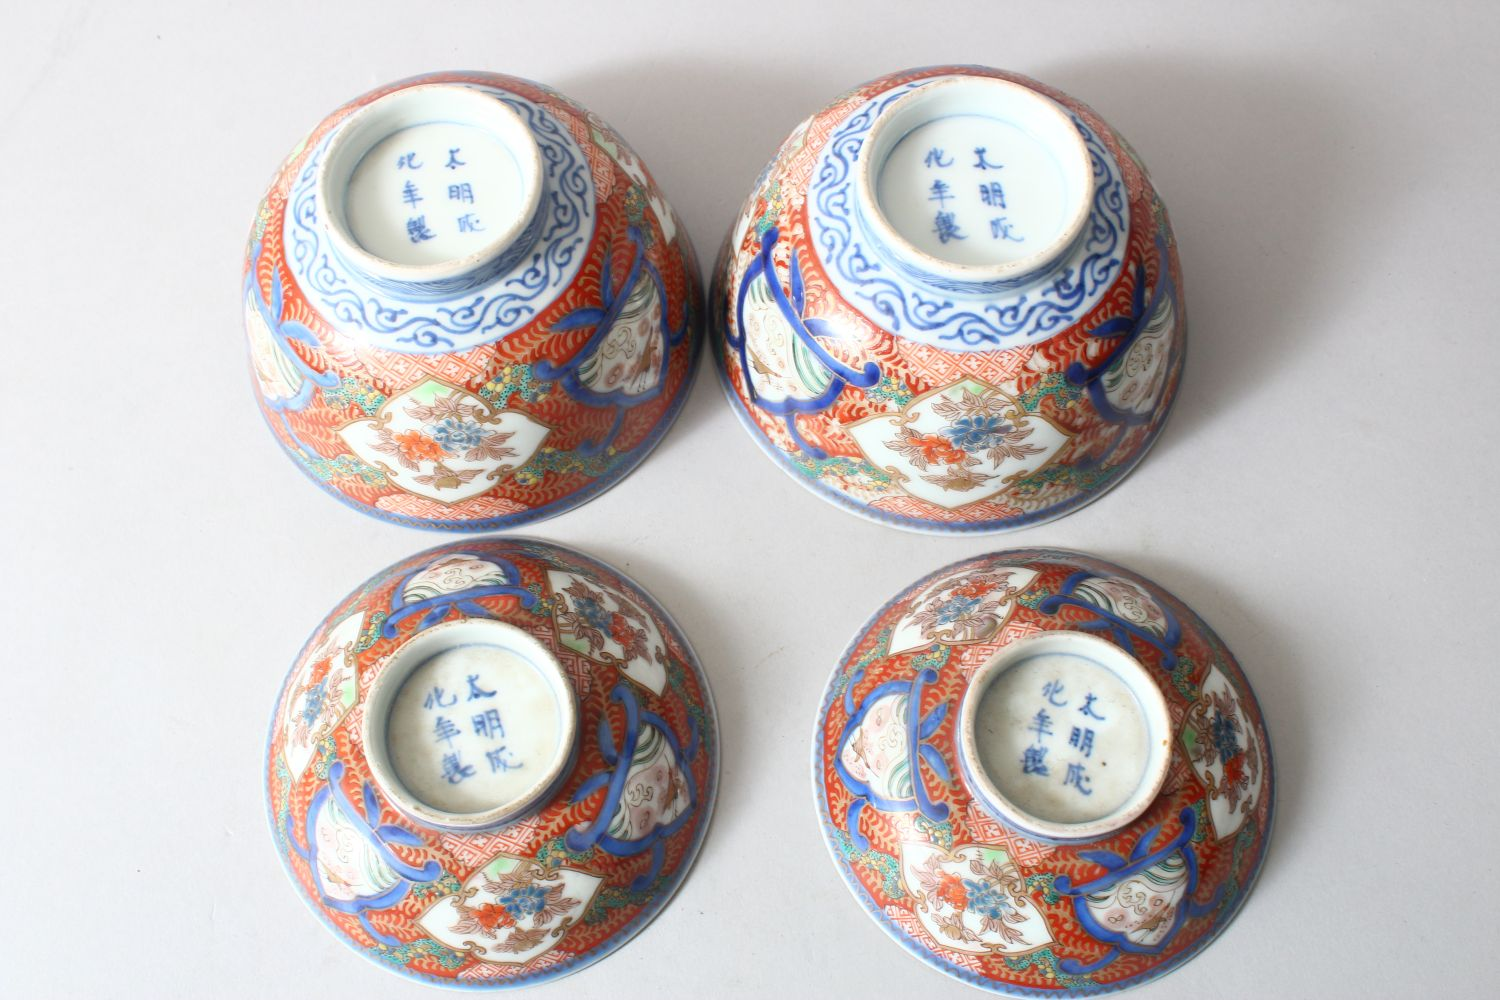 A PAIR OF JAPANESE MEIJI PERIOD IMARI PORCELAIN BOWLS AND COVERS, painted with alternating panels of - Image 2 of 4